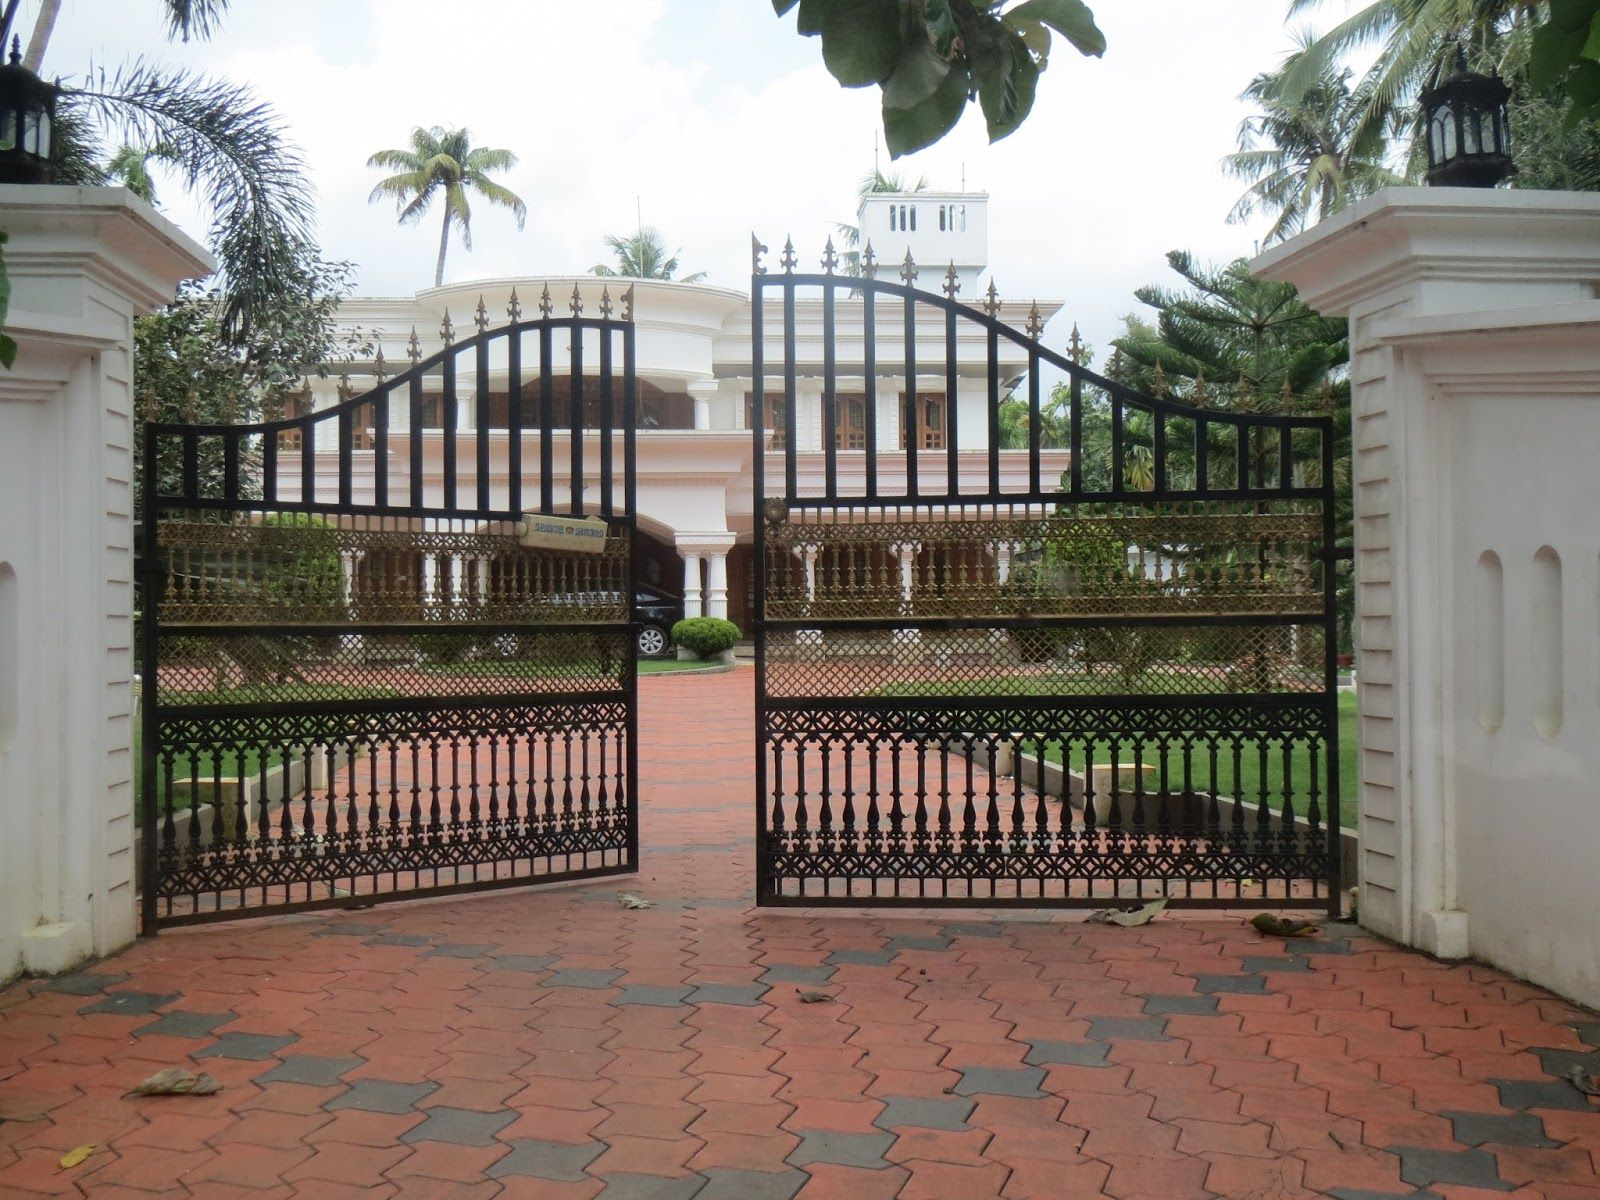 0efe5b0ea0dc7ad9608730a7bd2c2cc3 - Get Entrance Gate Design For Small House Background